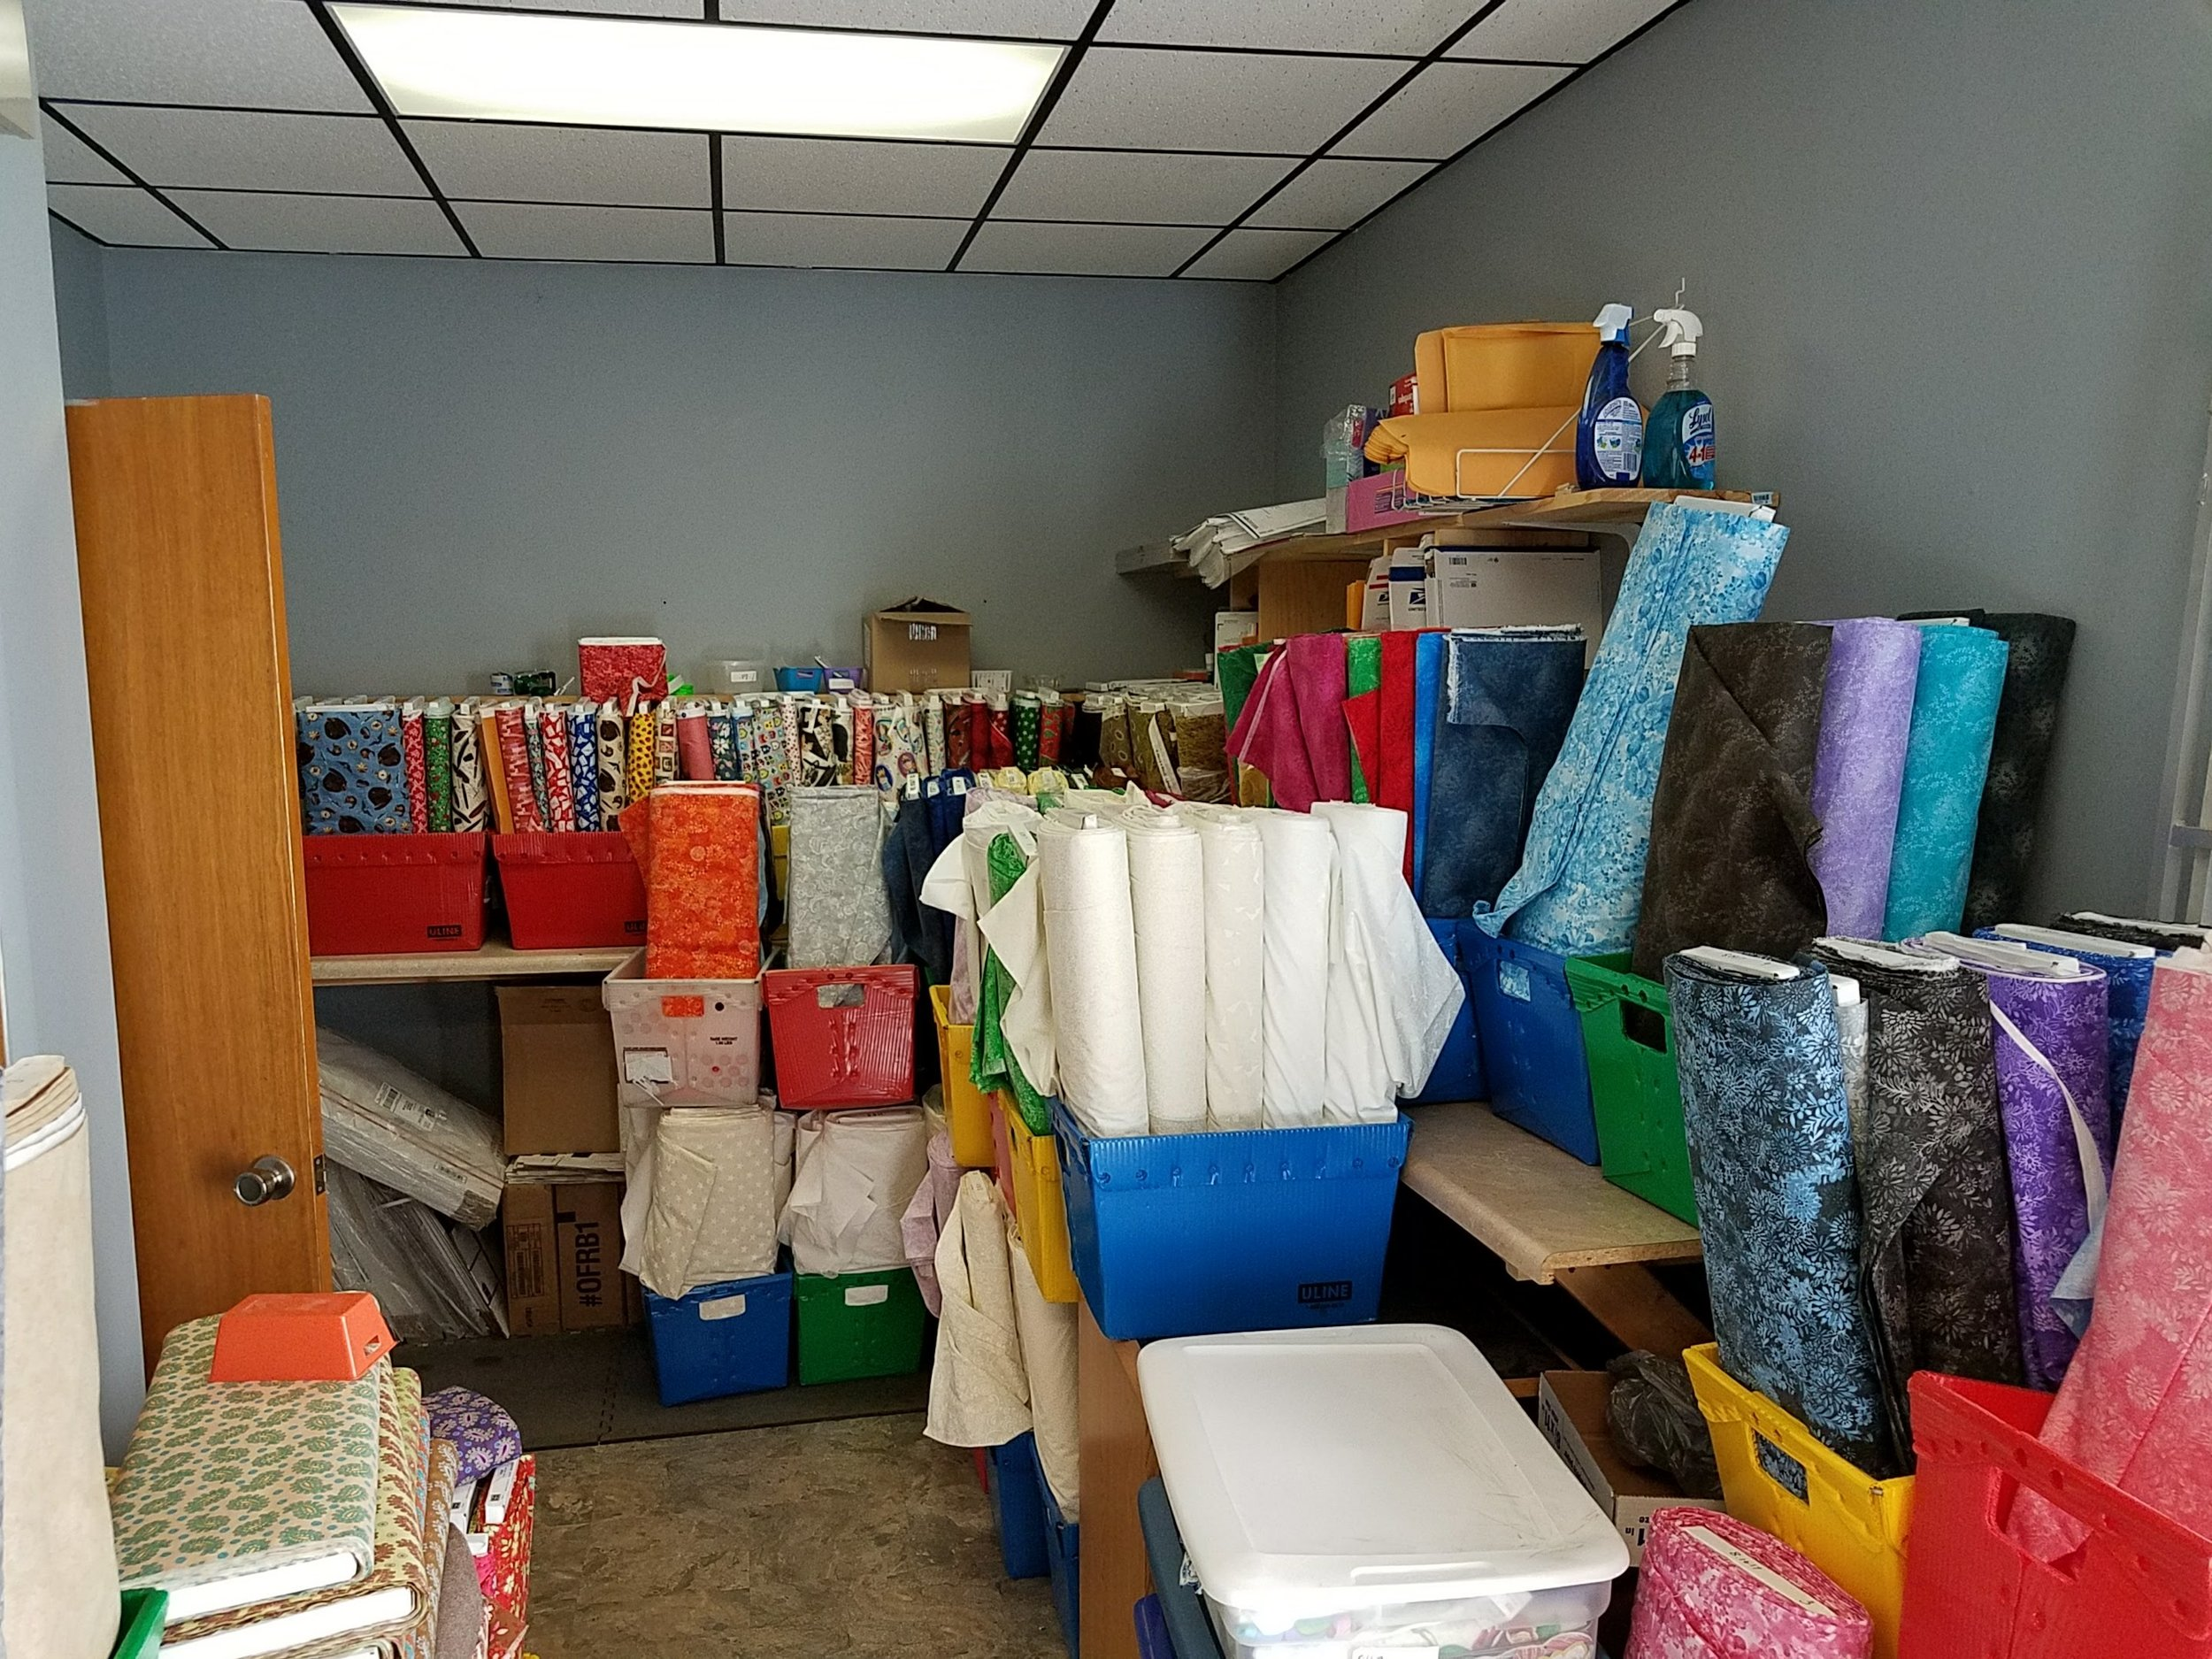 Backing Fabrics - took over the kitchen area of their new building while awaiting the emptying of their new home.